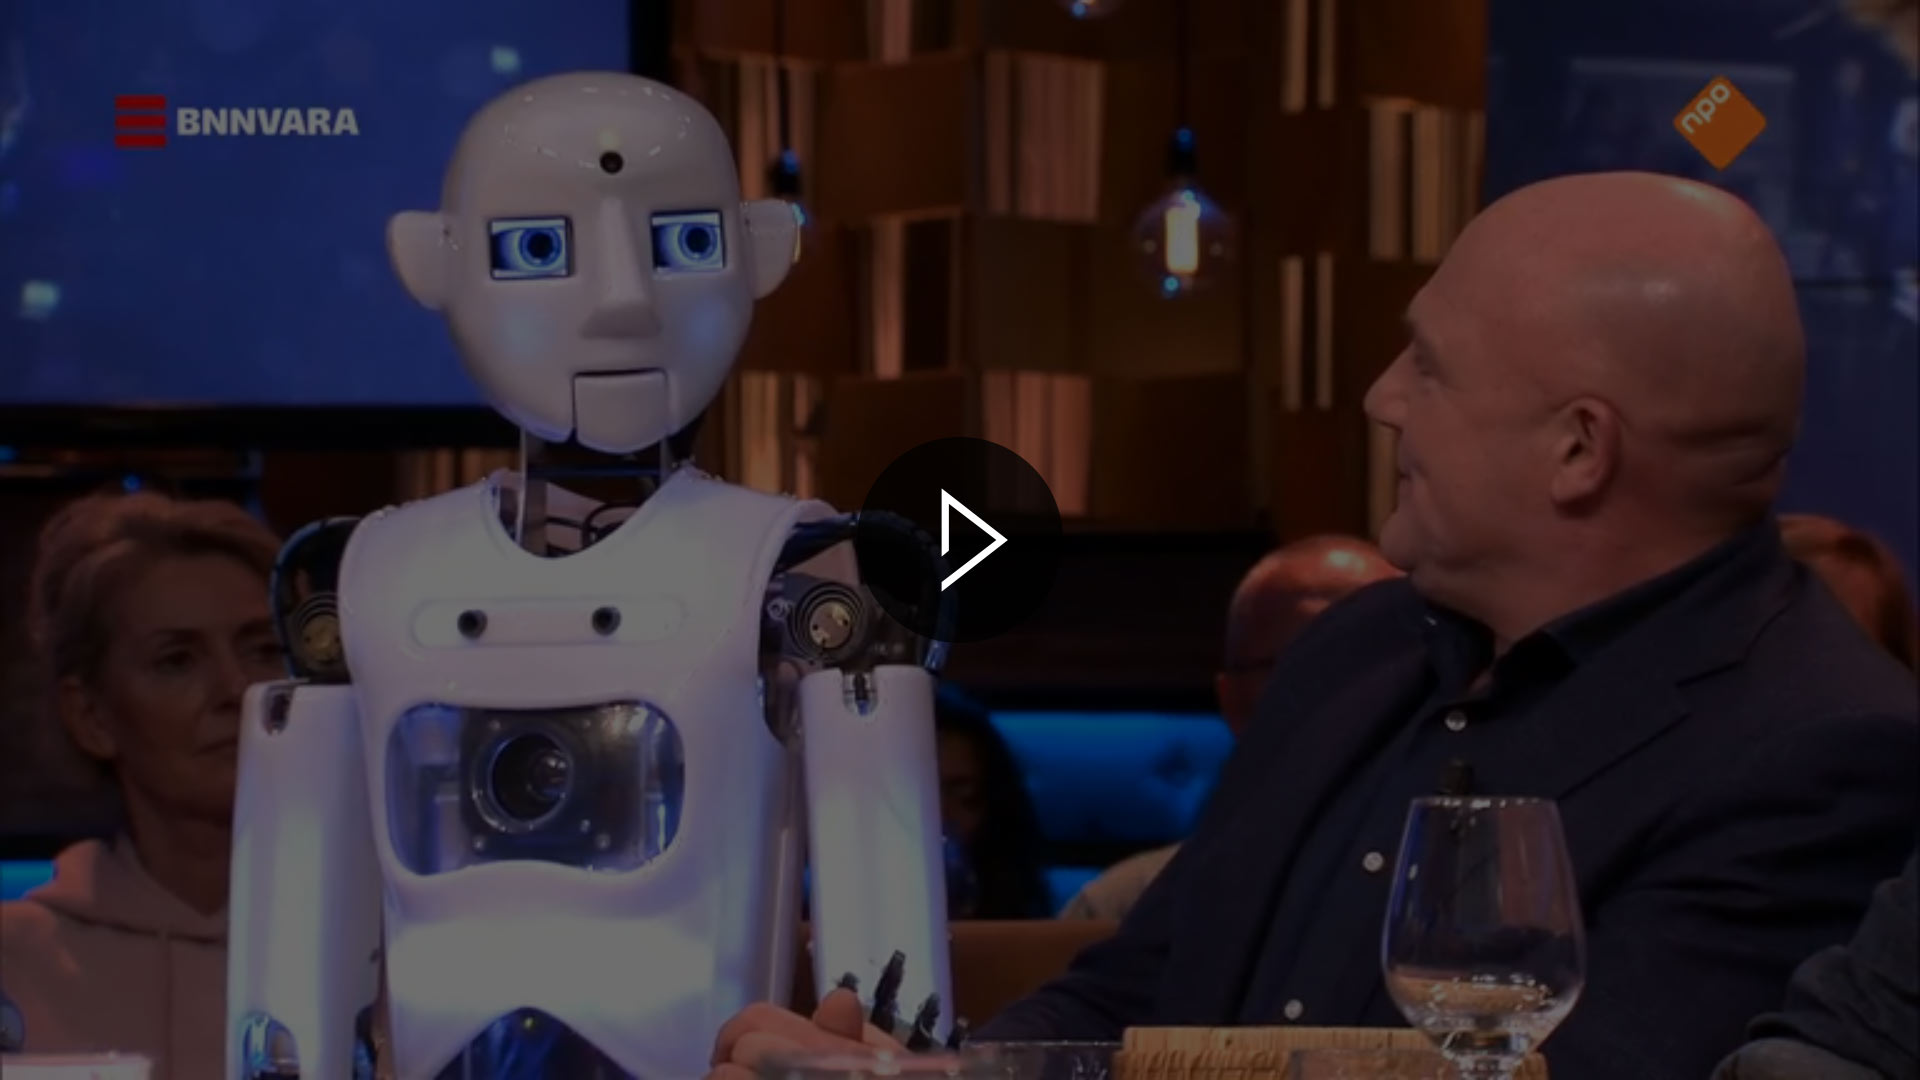 RoboThespian & André Kuipers on the Set of Pauw